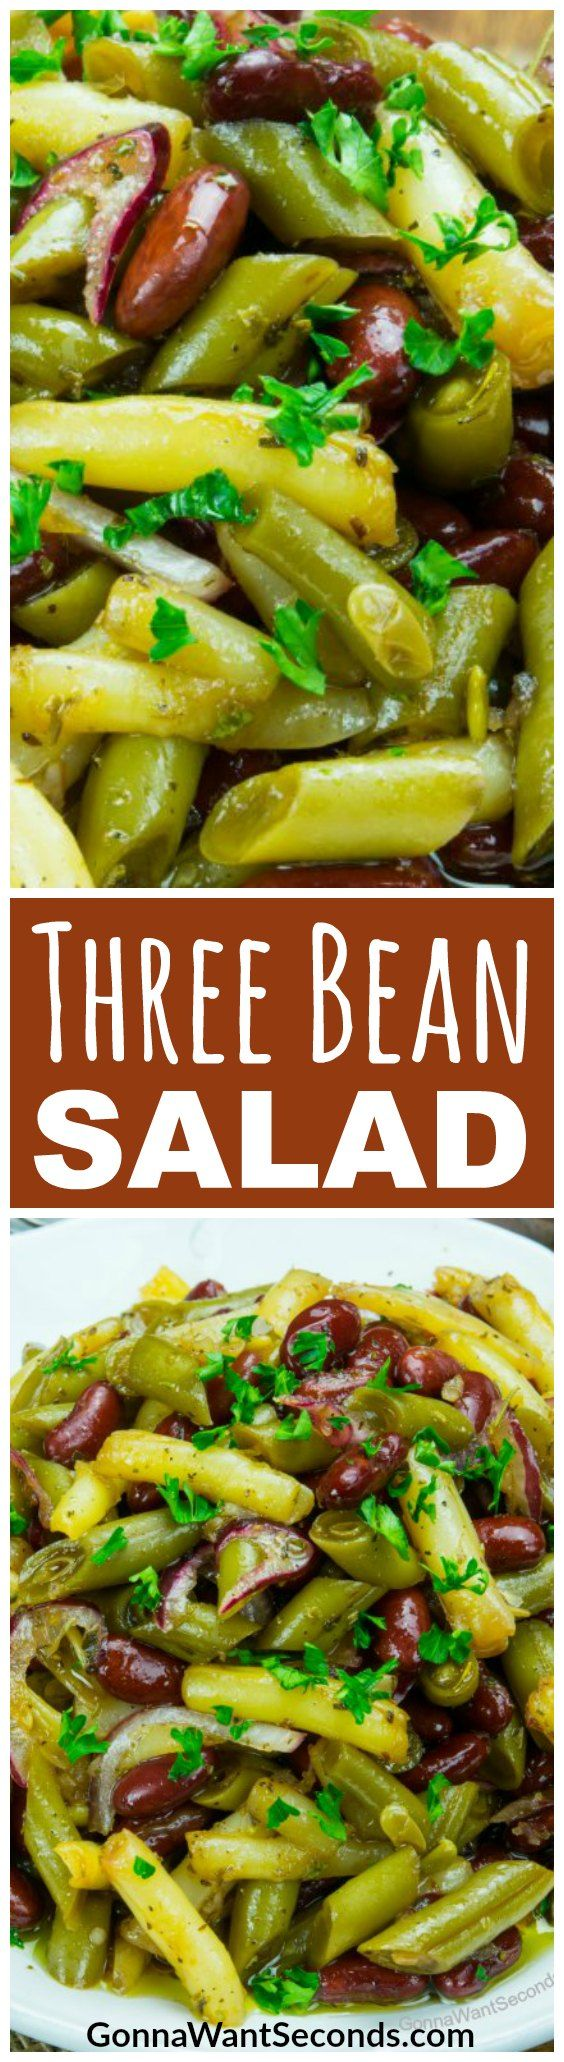 They say three's a crowd, but it's a winning number in my Three Bean Salad! This colorful concoction of beans soaked in a tangy, subtly sweet marinade will be an awesome potluck addition or an amazing side for any meal.